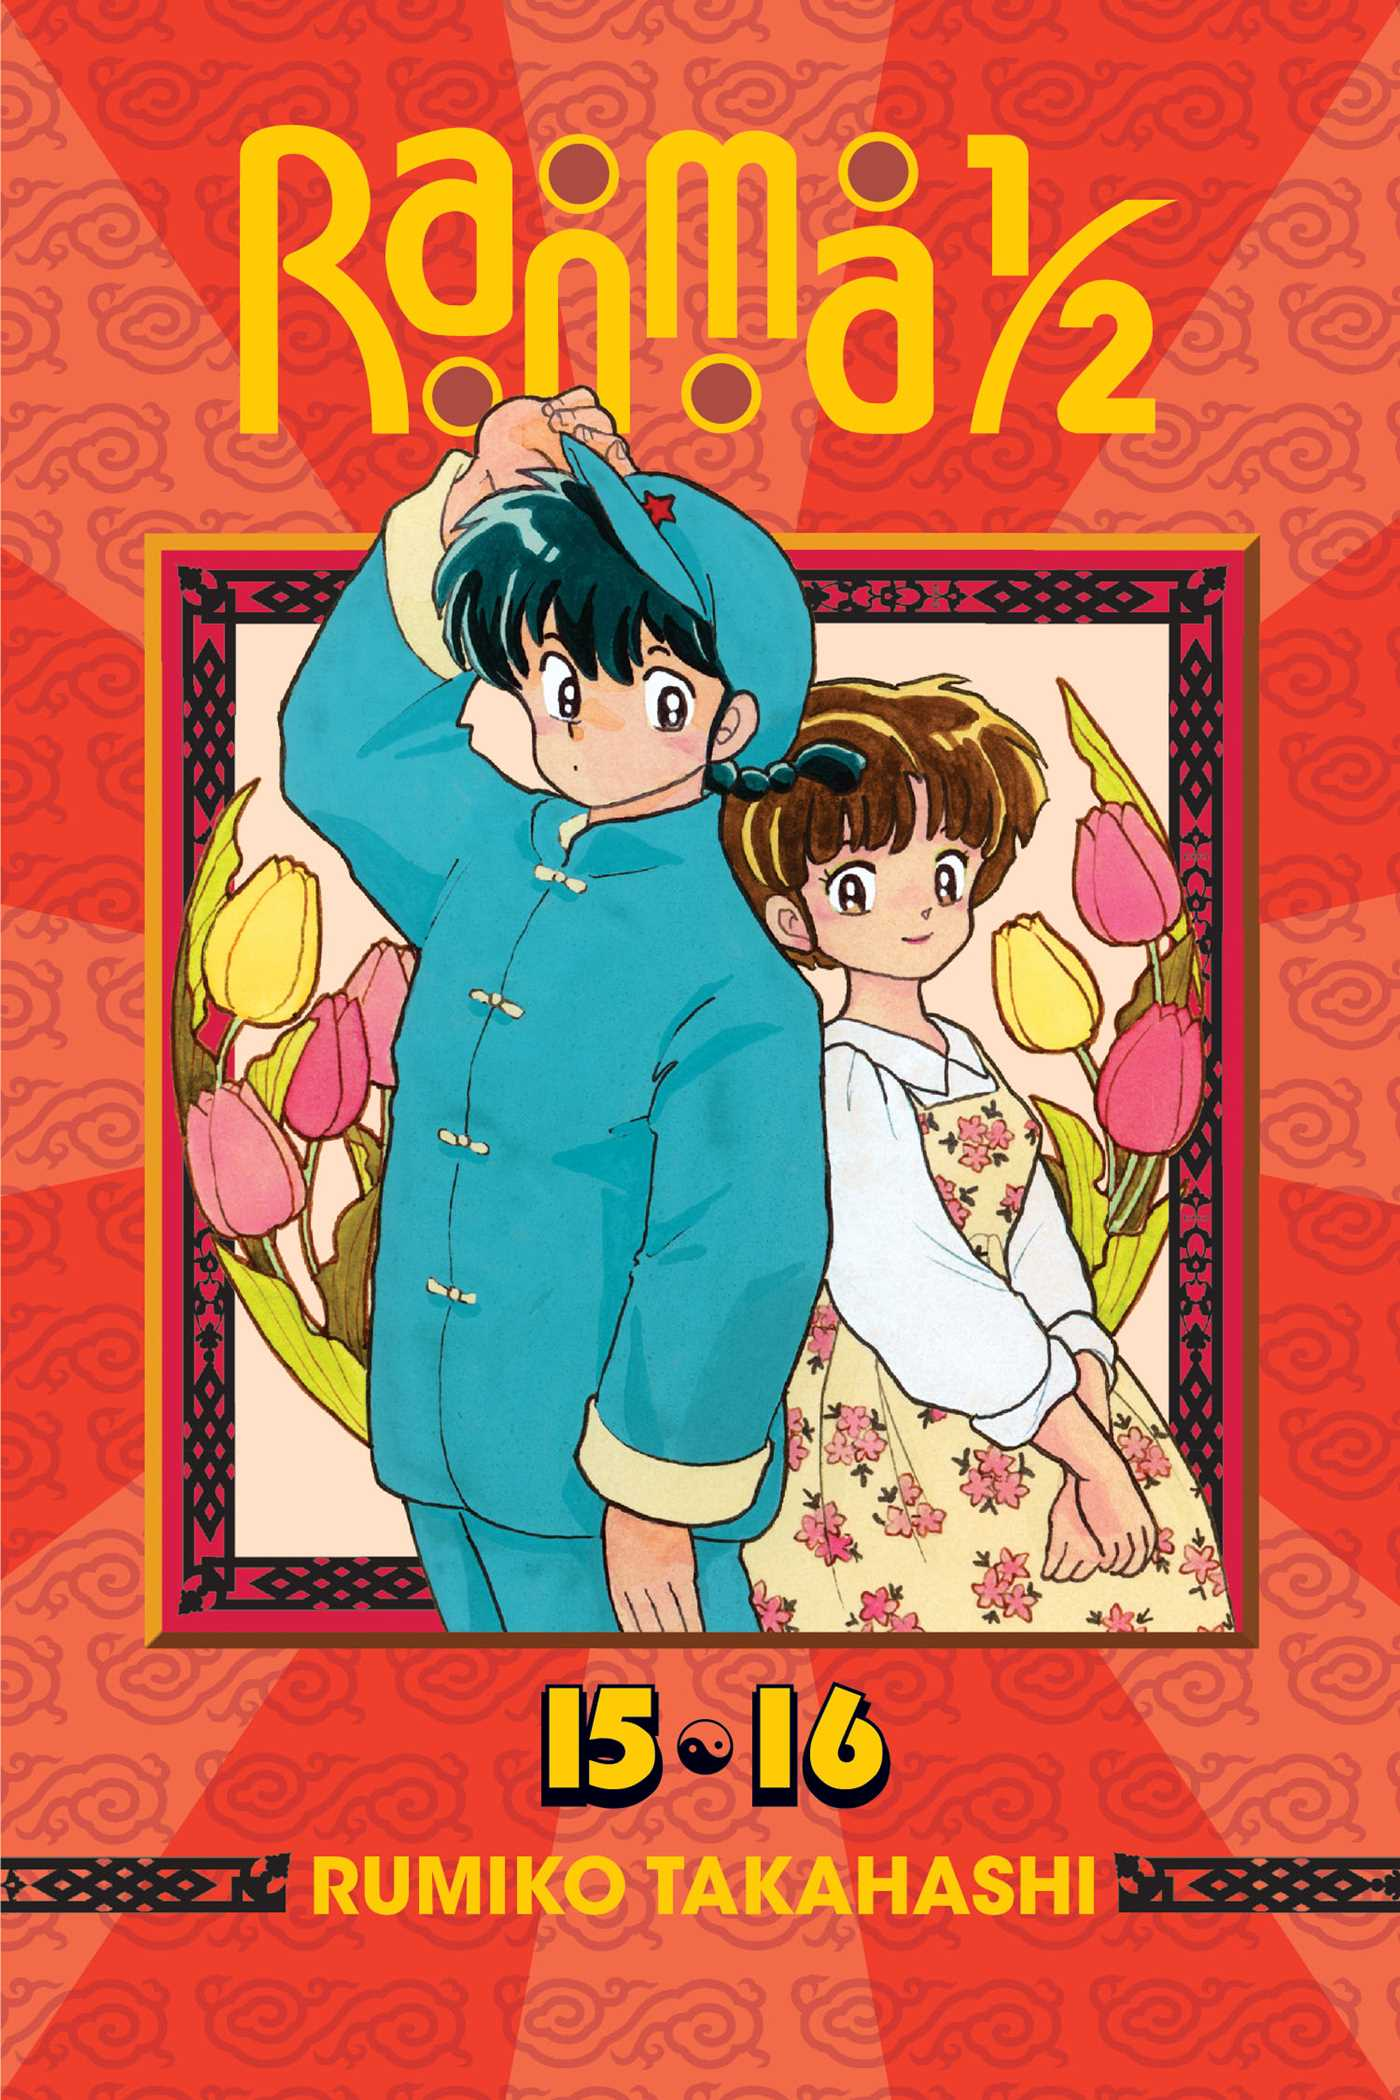 Ranma 1 2 (2 in 1 edition) vol 8 9781421566214 hr